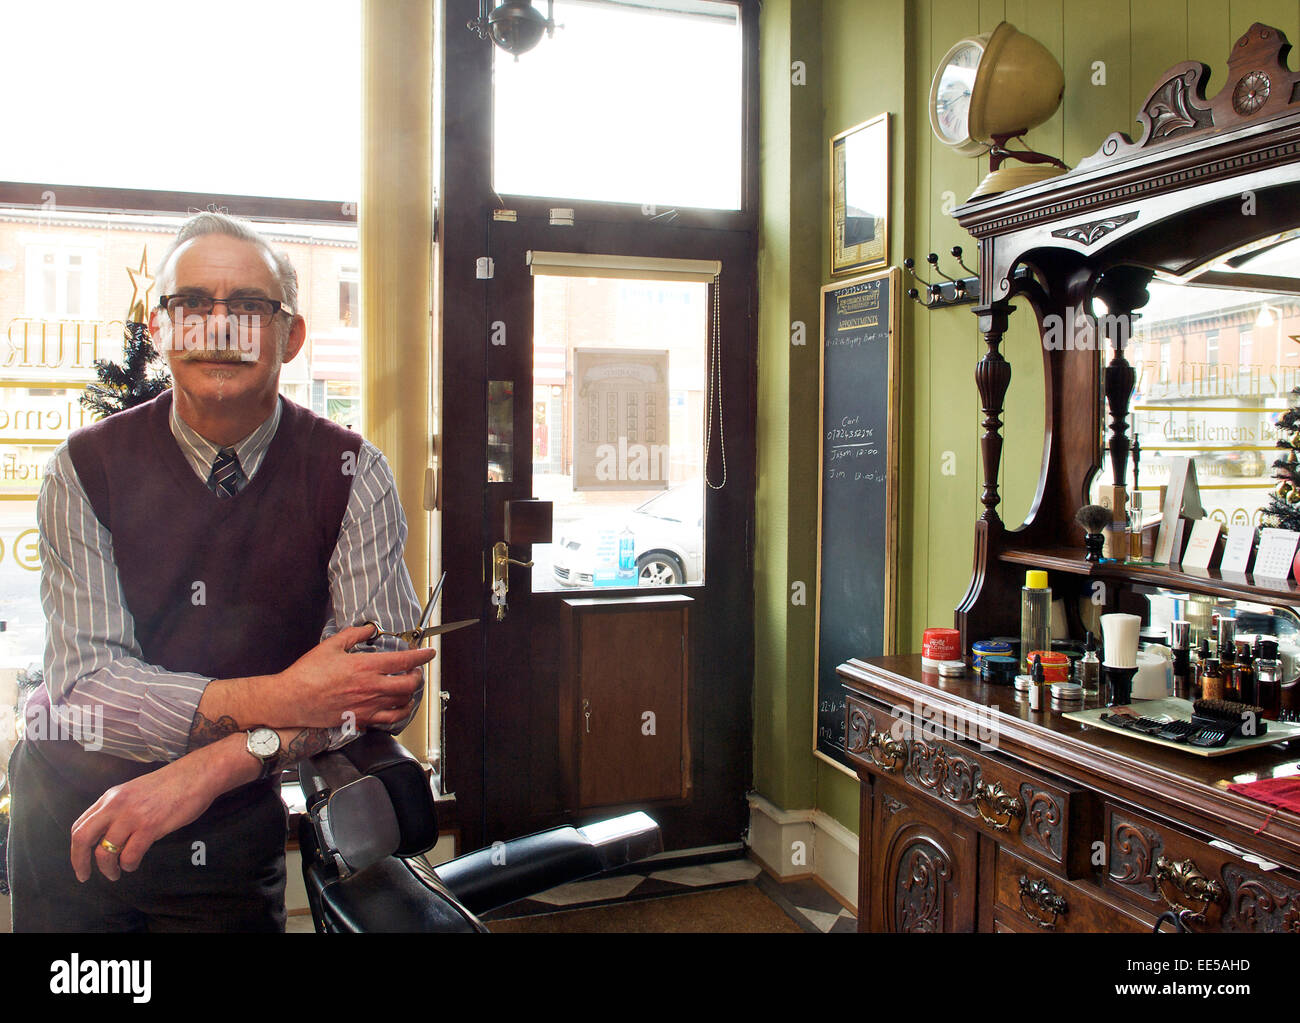 Traditional barbers shop Stock Photo, Royalty Free Image ...